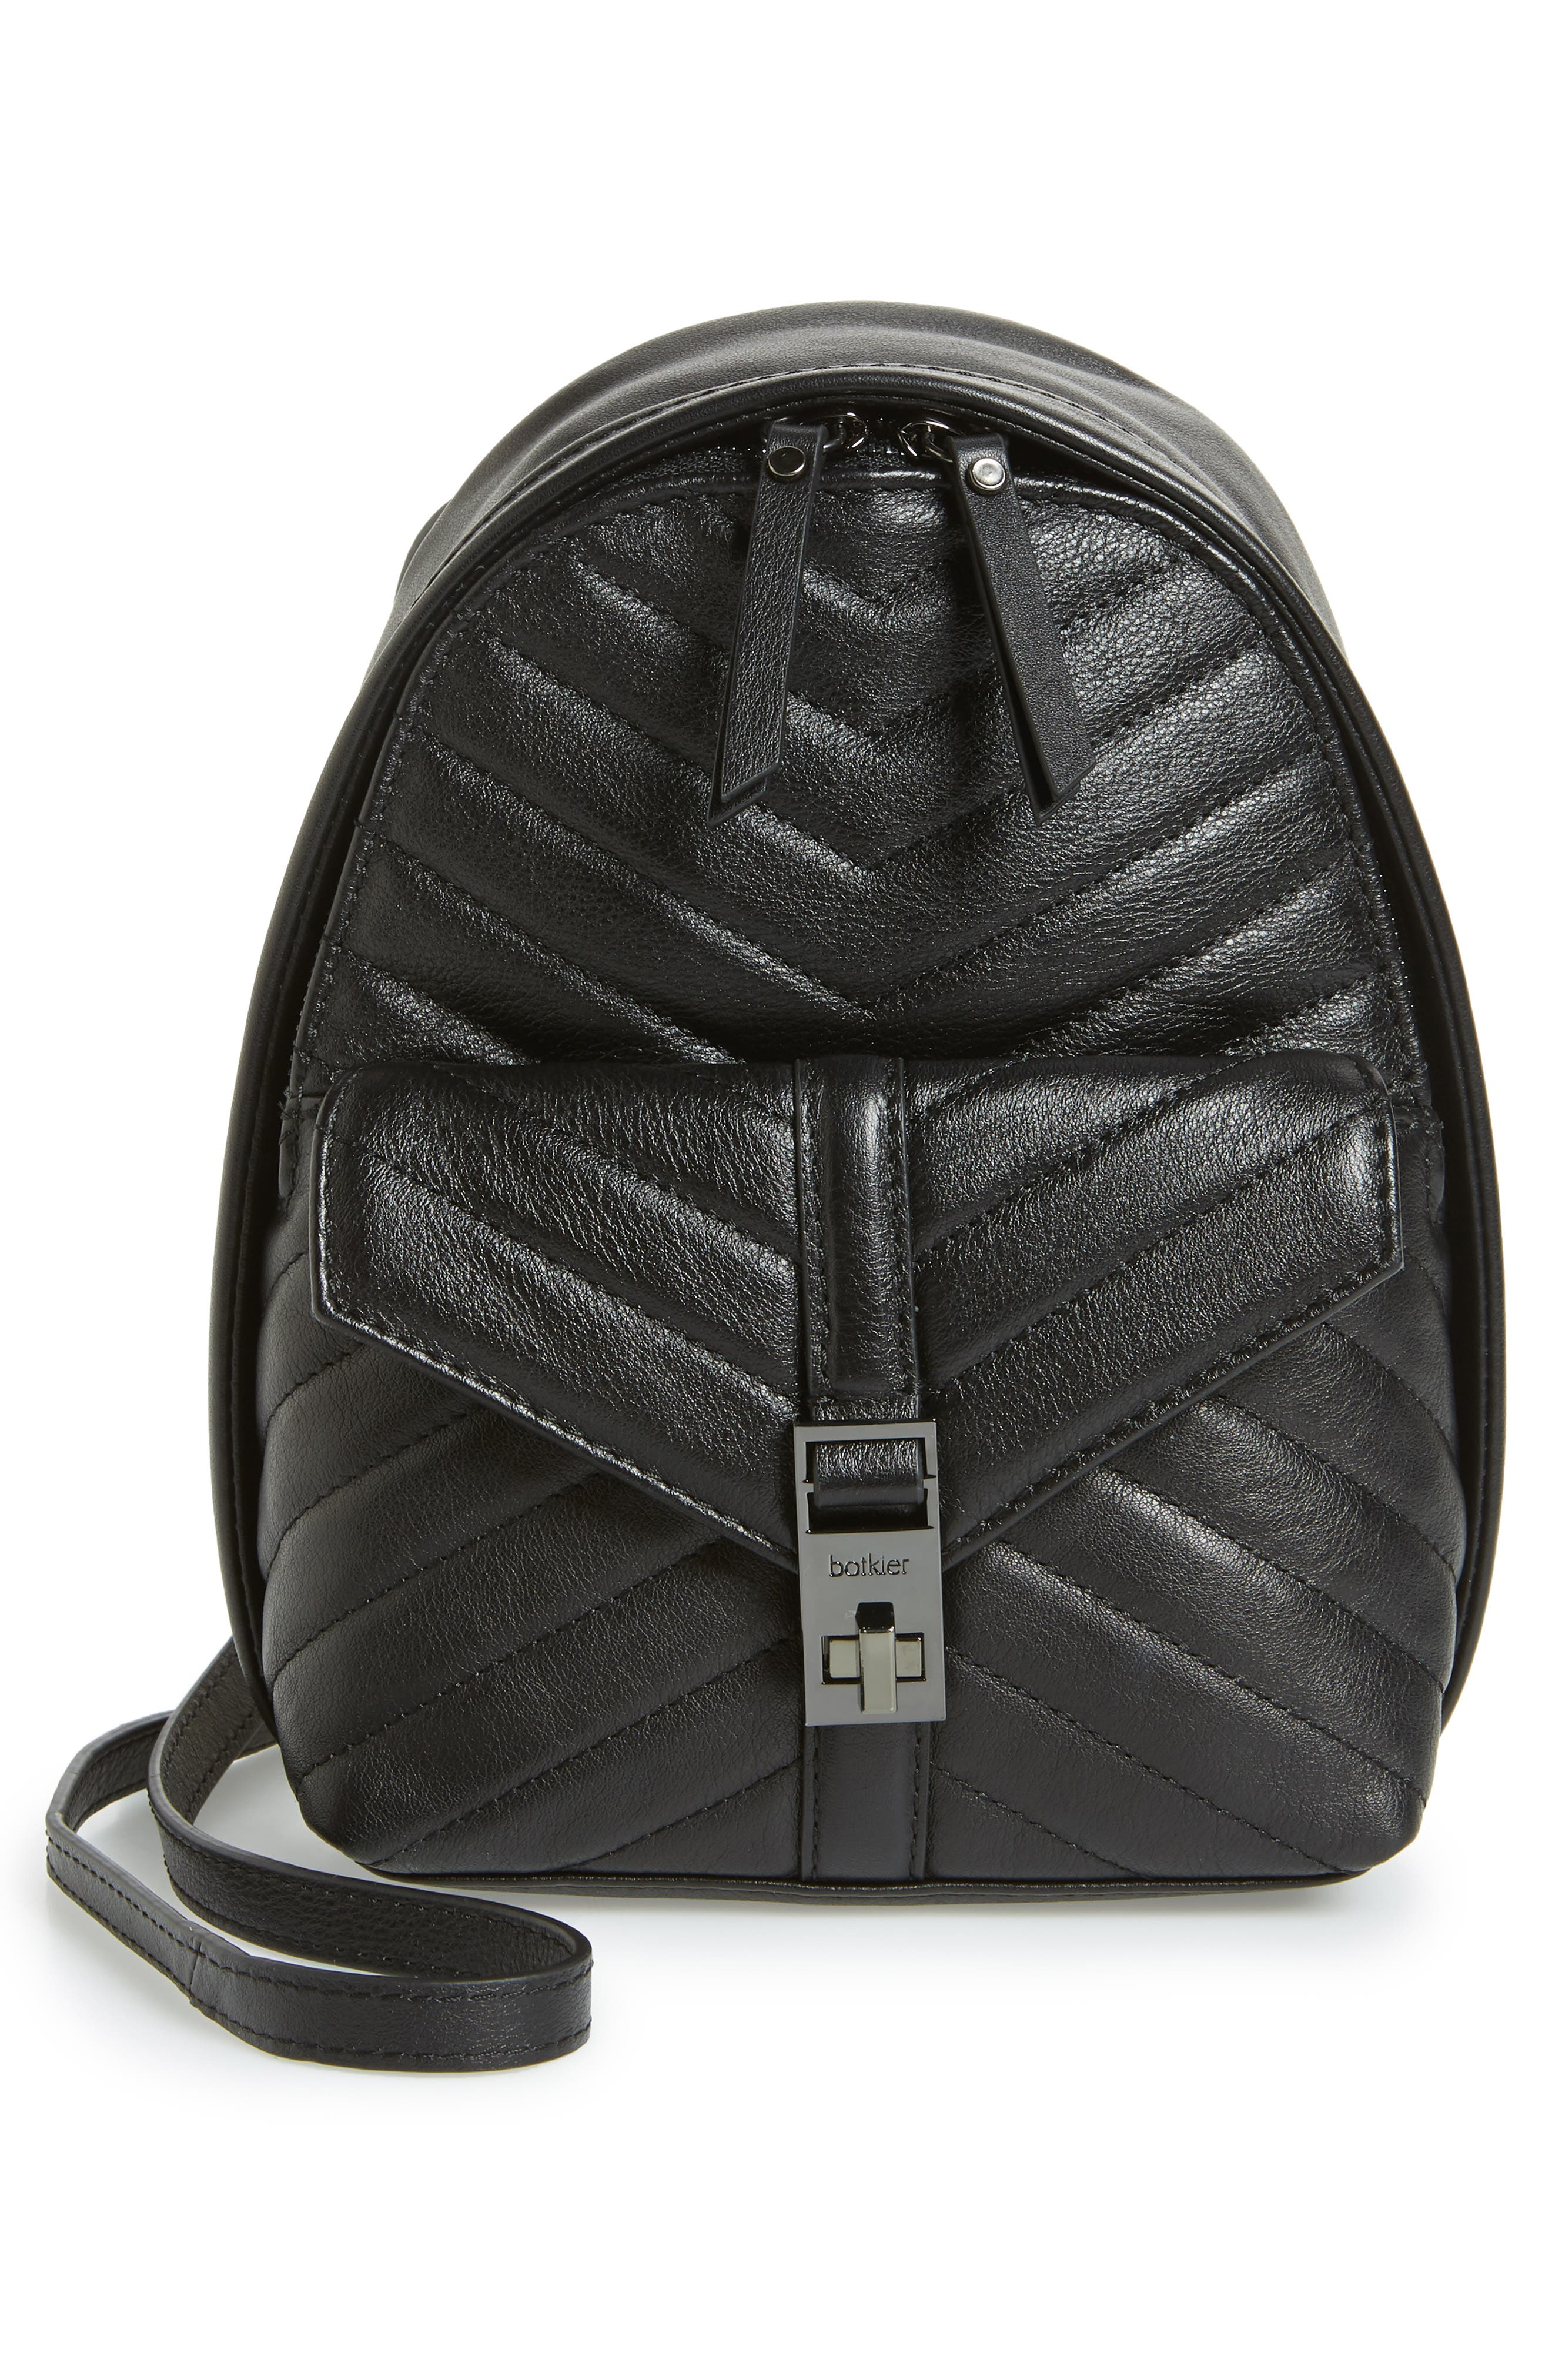 Dakota Quilted Leather Backpack,                             Alternate thumbnail 3, color,                             001